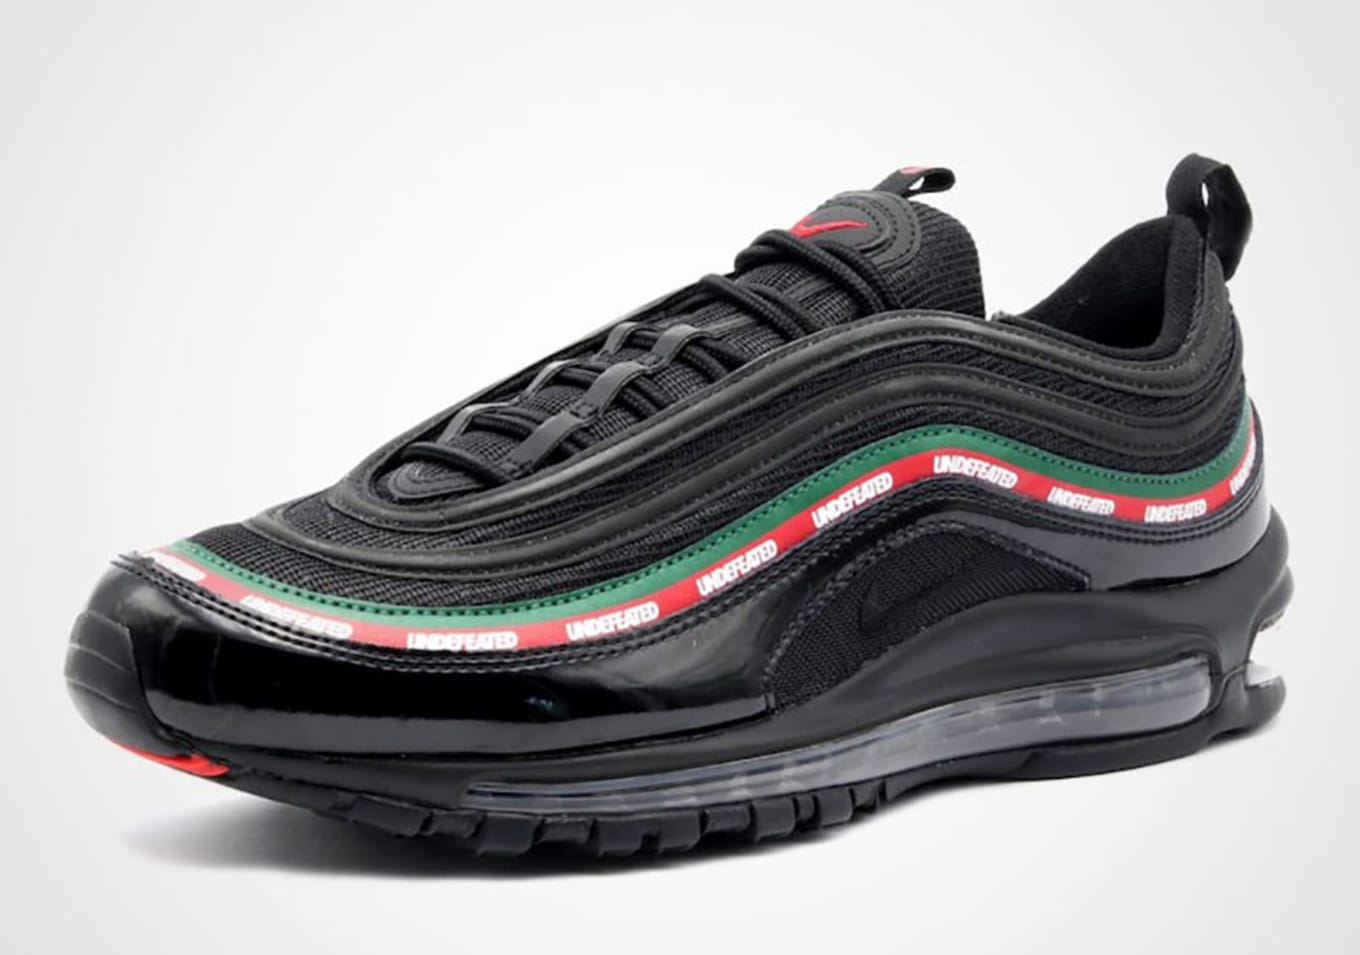 3a12ff7dd1c2 Undefeated x Nike Air Max 97s May Be Releasing Soon. Here is a detailed look  at the upcoming collaboration.